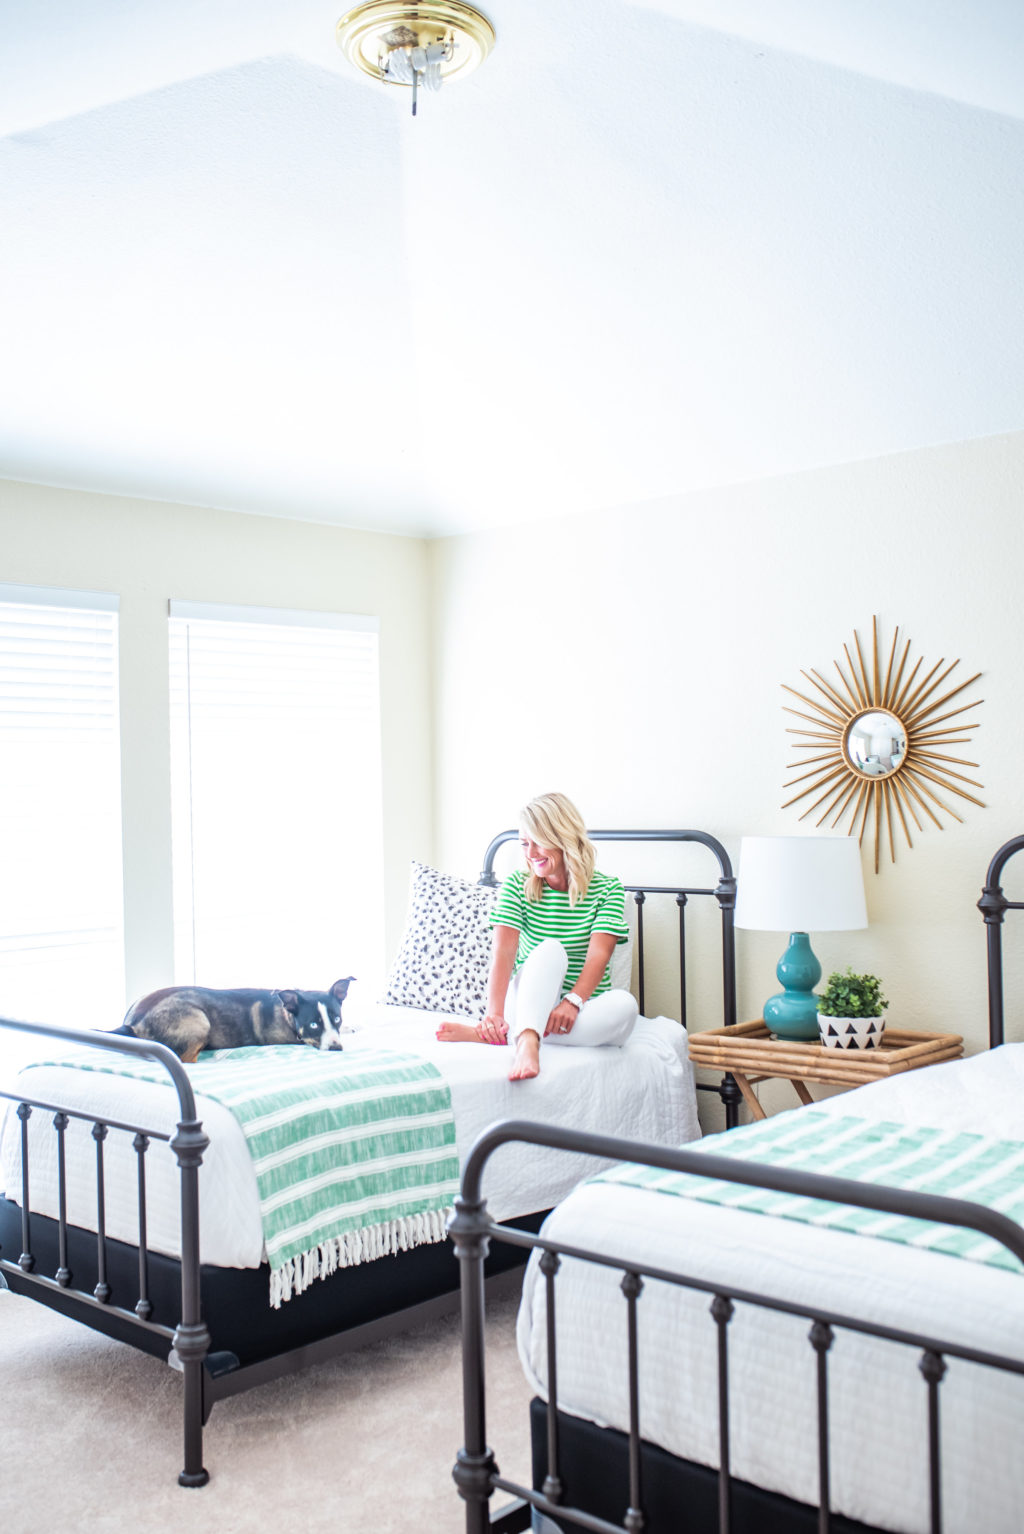 The Guest Room Makeover Plans Hi Sugarplum